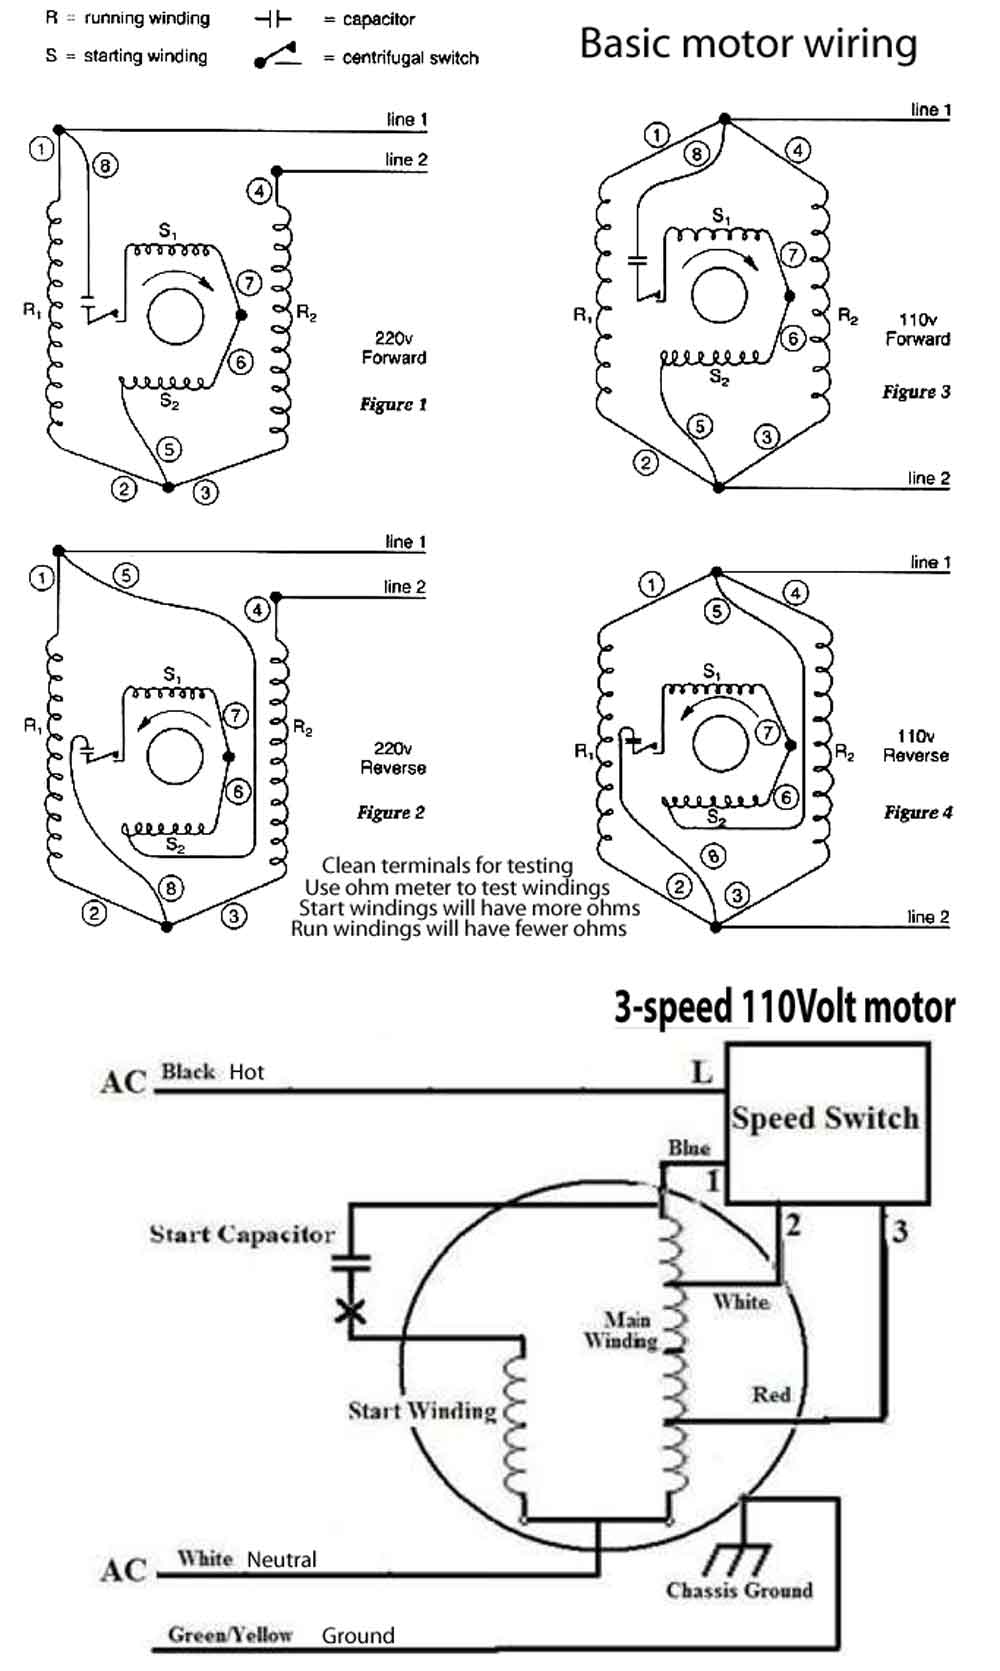 Motor wiring 500 how to wire 3 speed fan switch meter test switch wiring diagram at cos-gaming.co